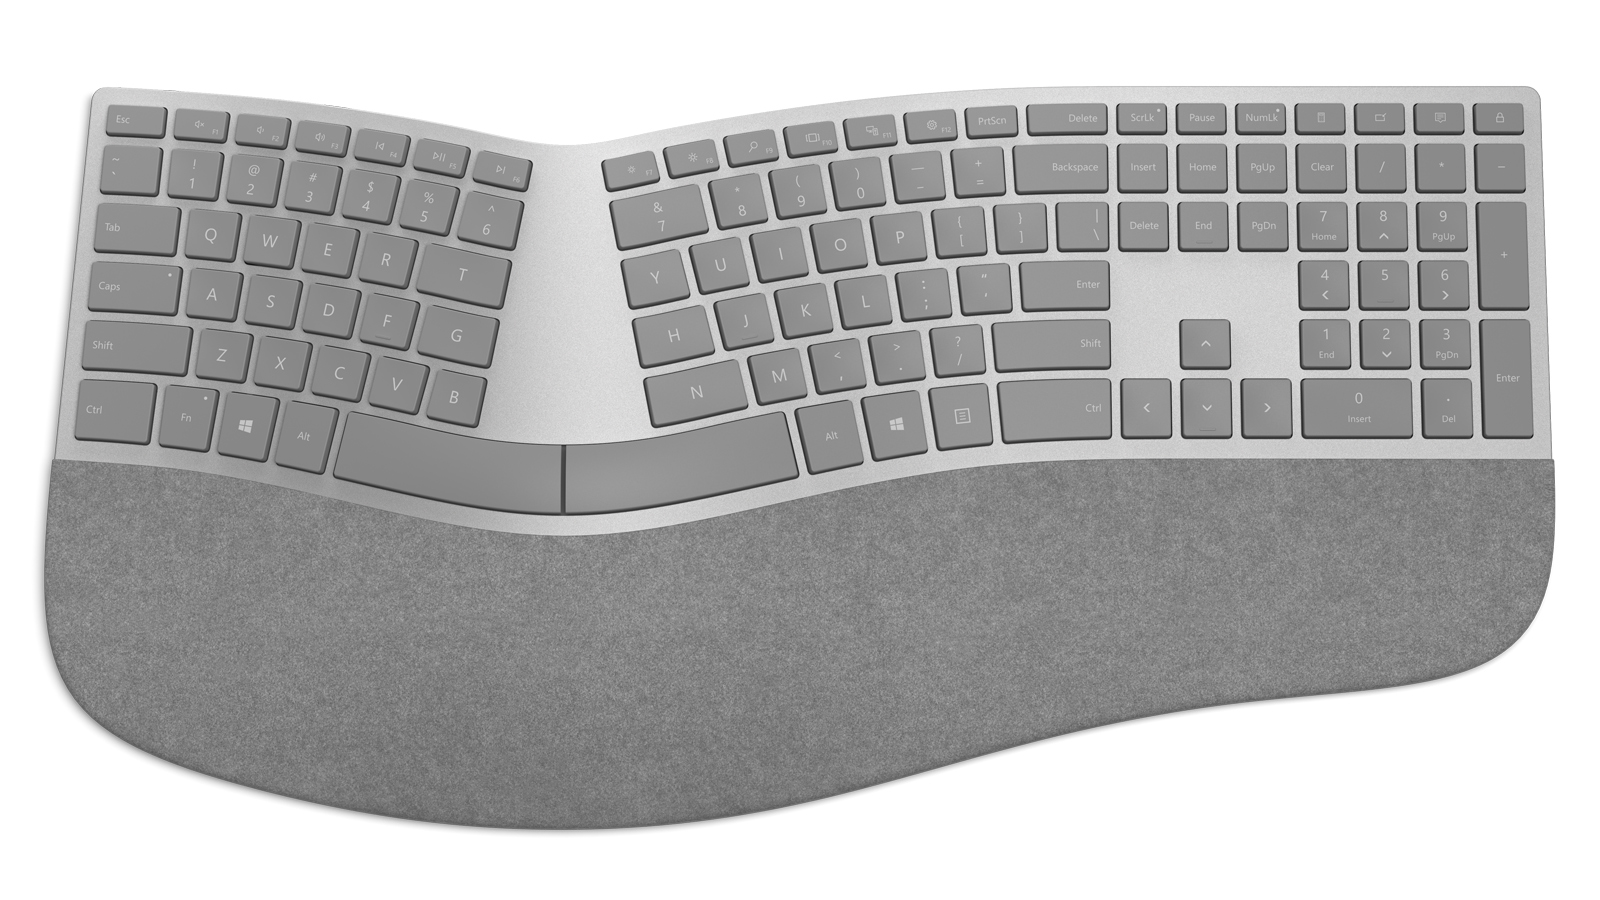 Microsoft unveils an ergonomic keyboard for Surface fans